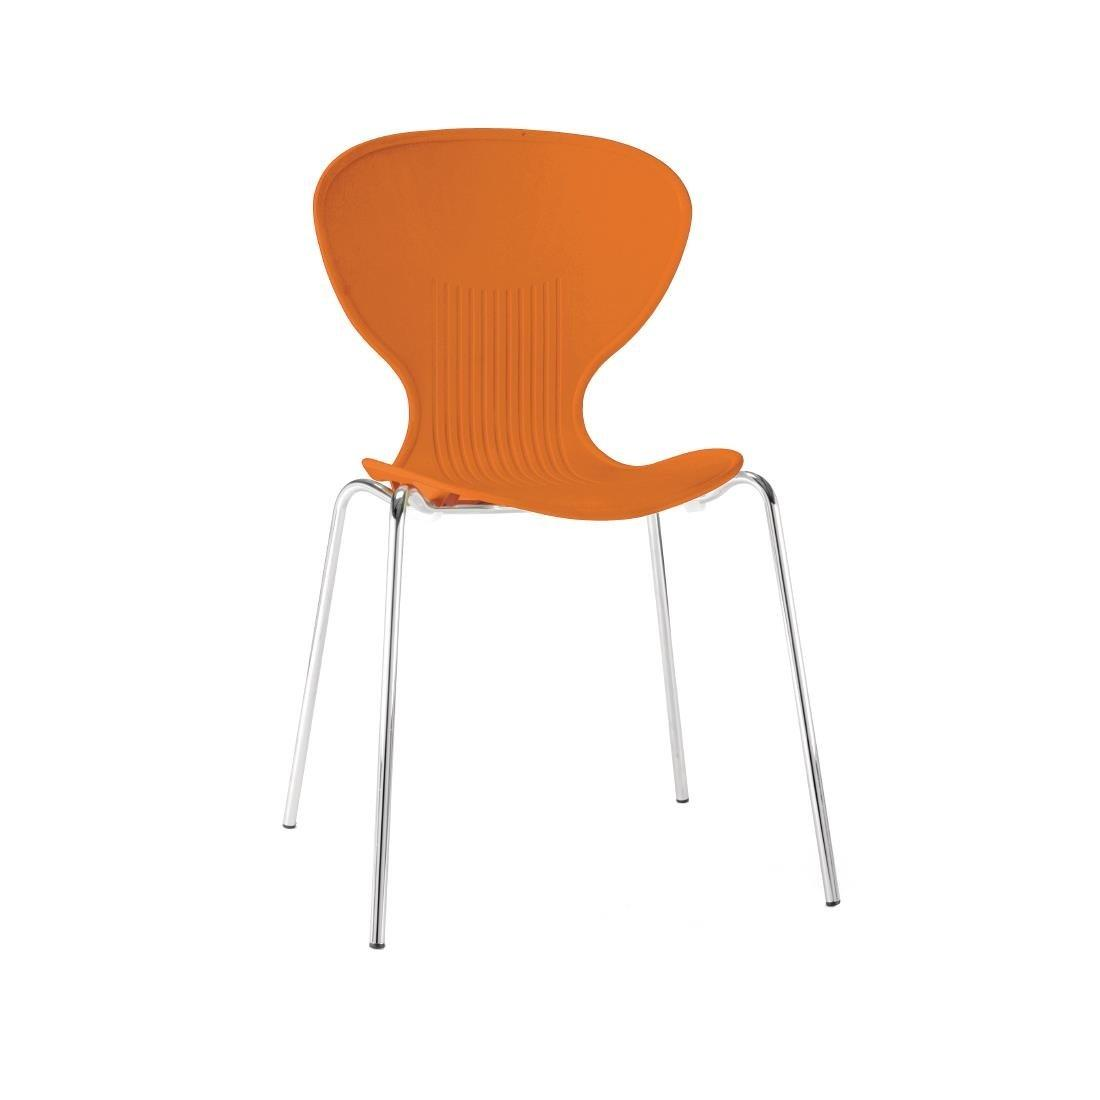 GP505 - Bolero Orange Stacking Plastic Side Chairs - Case of 4 - GP505